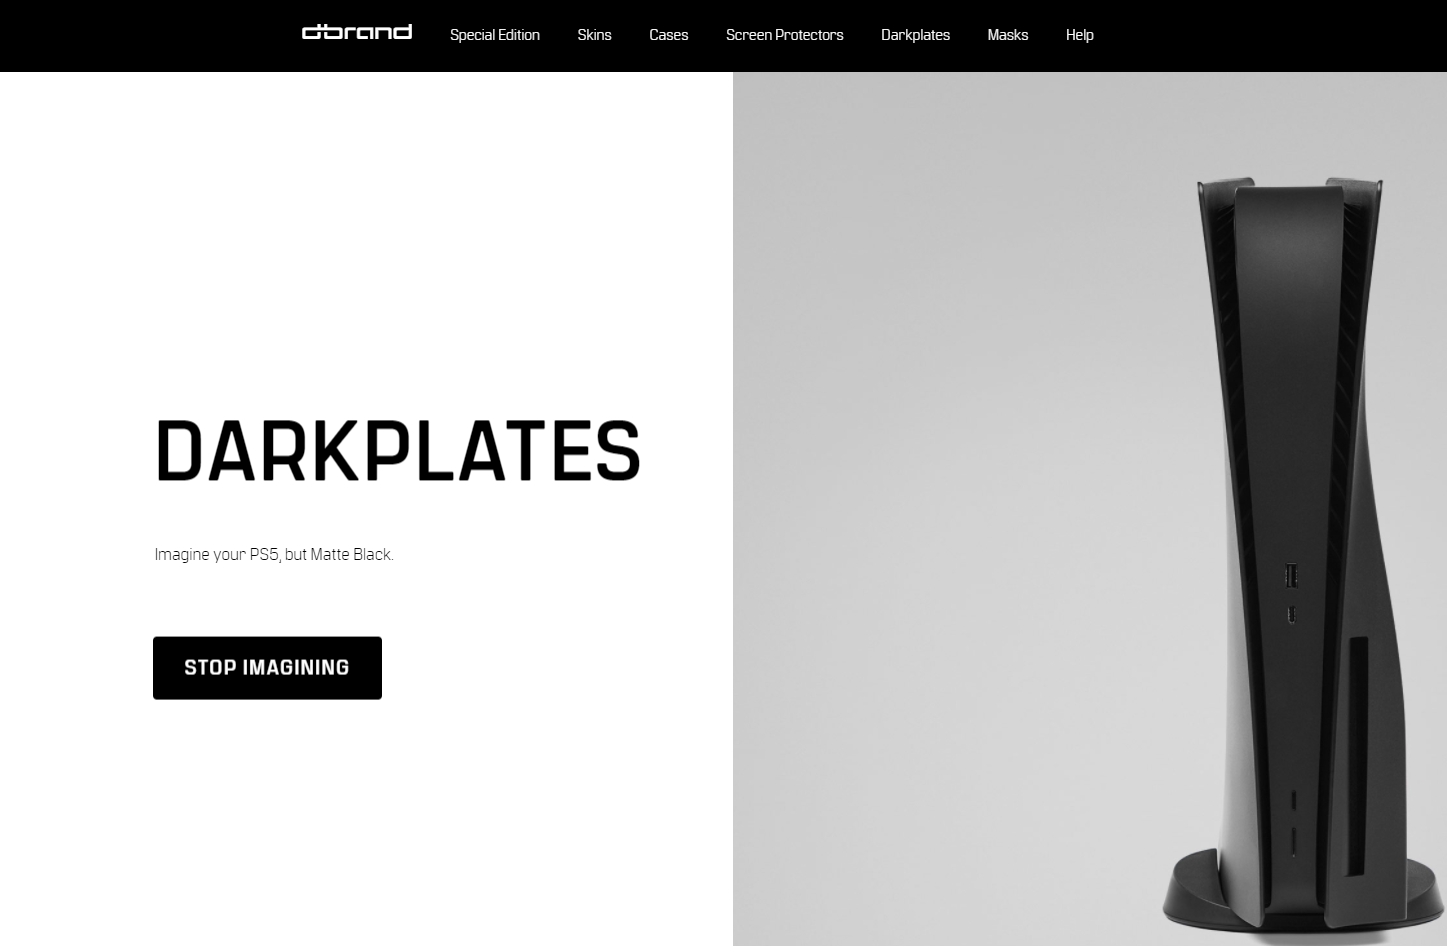 Landing-page-feature-DBrand